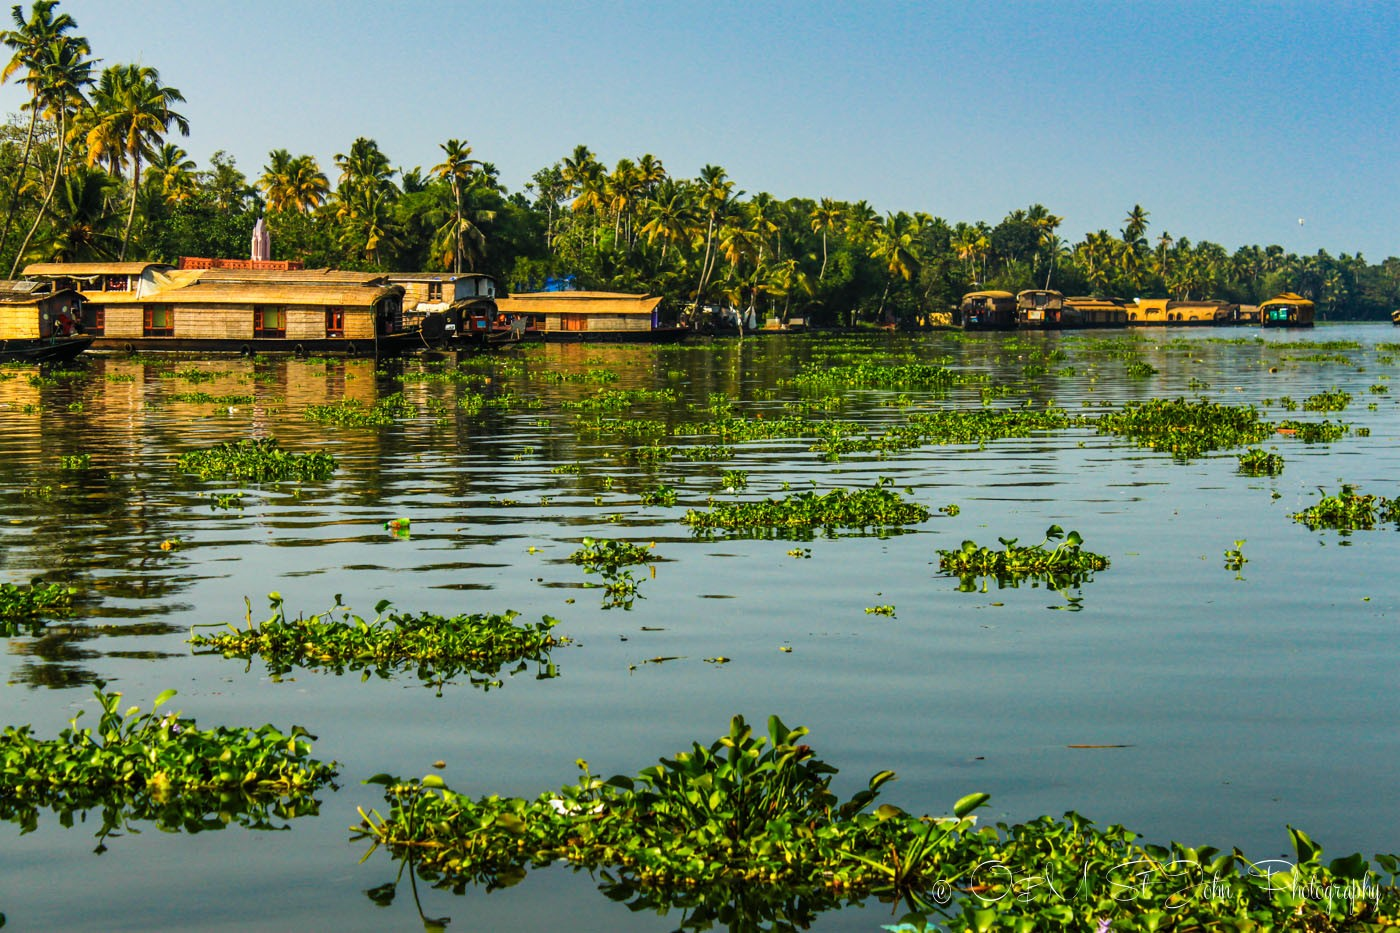 sailing through kerala backwaters on a houseboat oksana st john 16 06 2015 asia photo essays